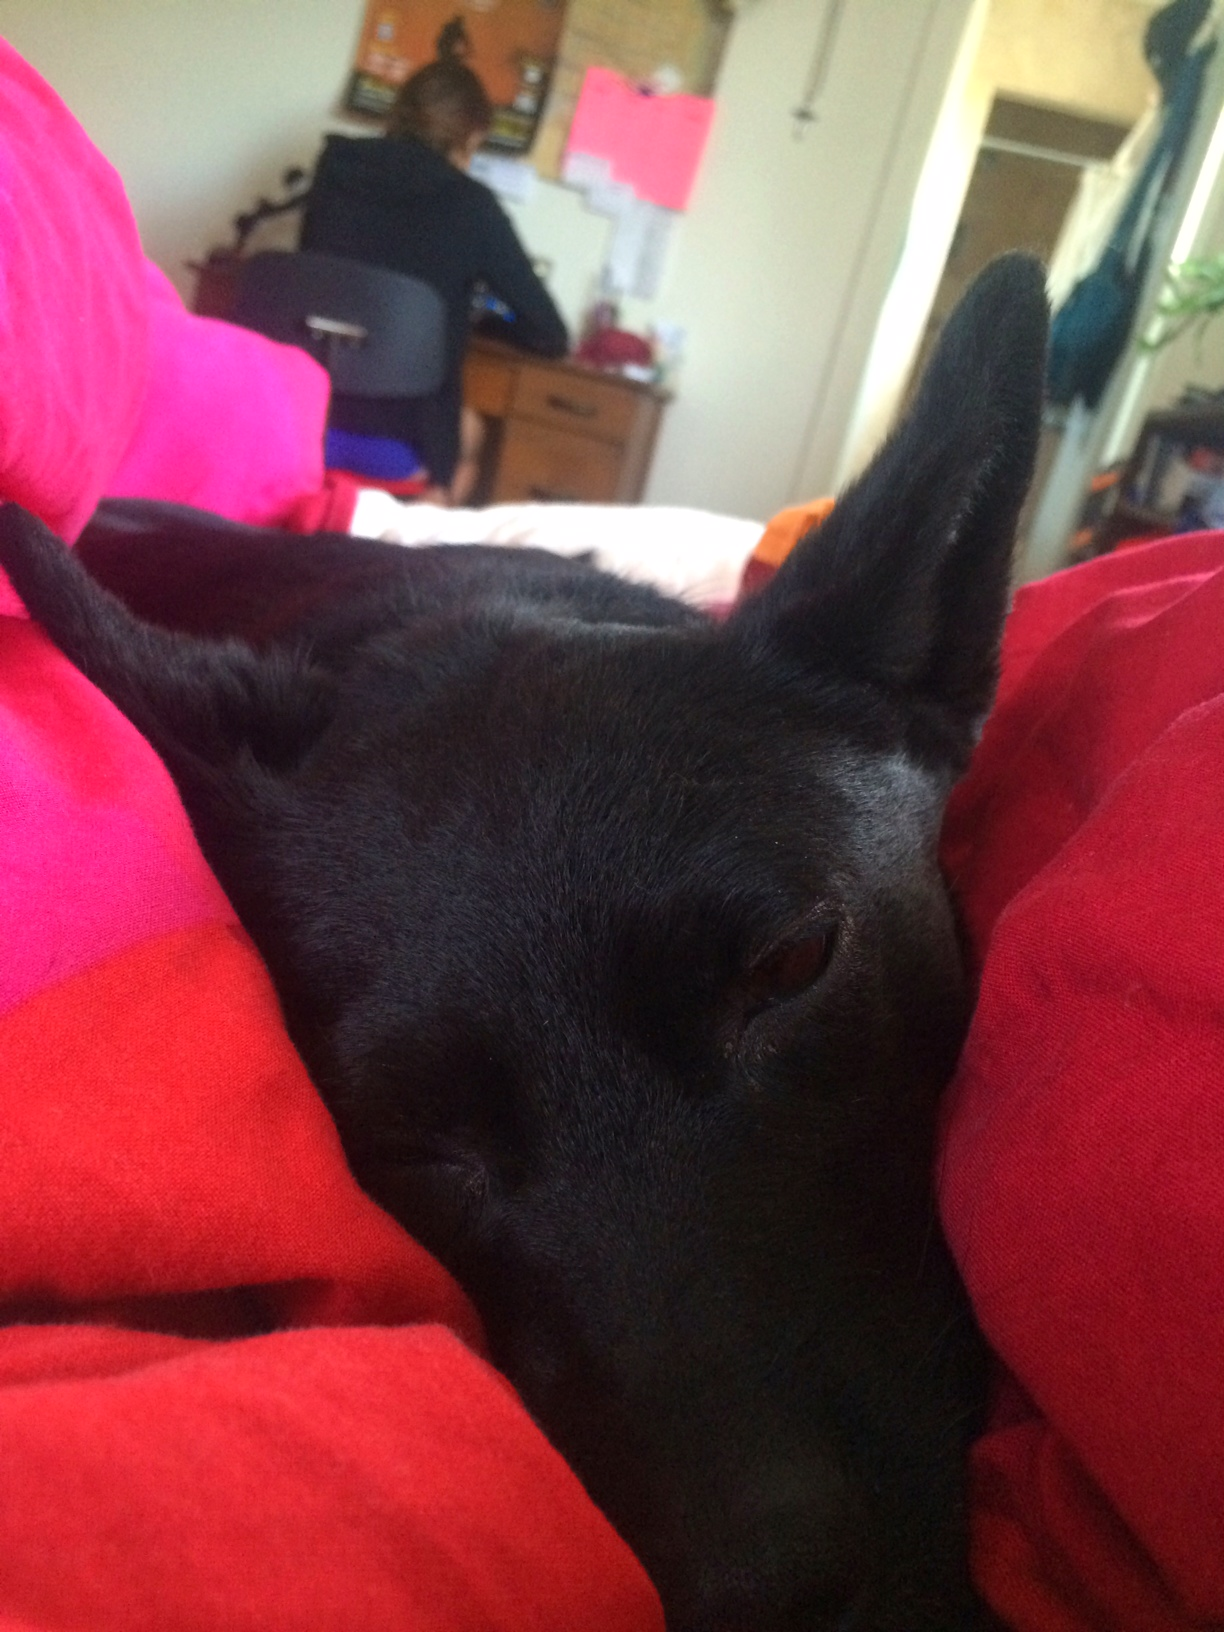 Neptune, the snuggle bat gets cozy while Anonabird studies in the background, my Monday morning view in NM.